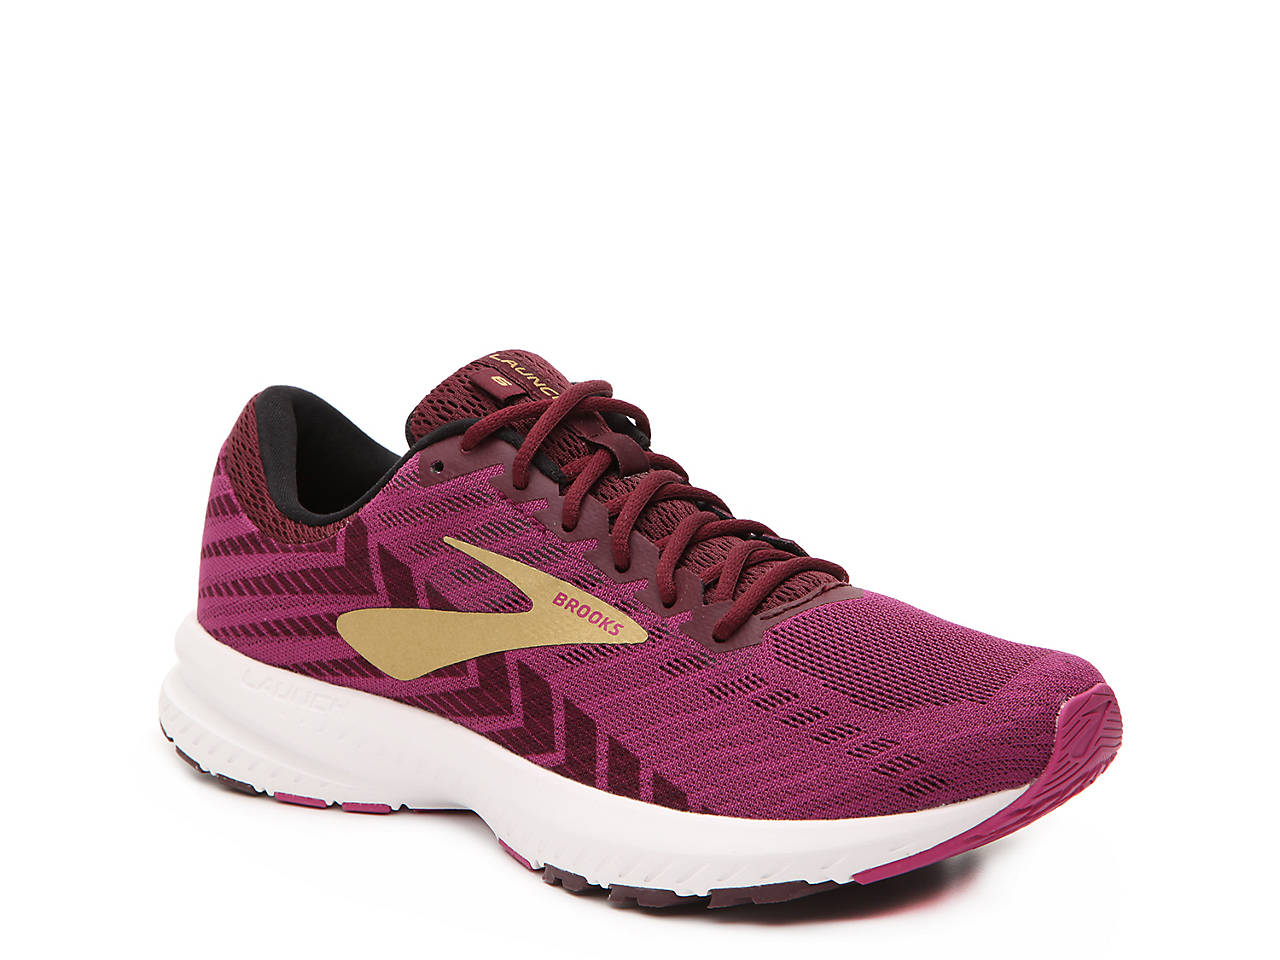 95dd315eb Brooks Launch 6 Running Shoe - Women's Women's Shoes | DSW